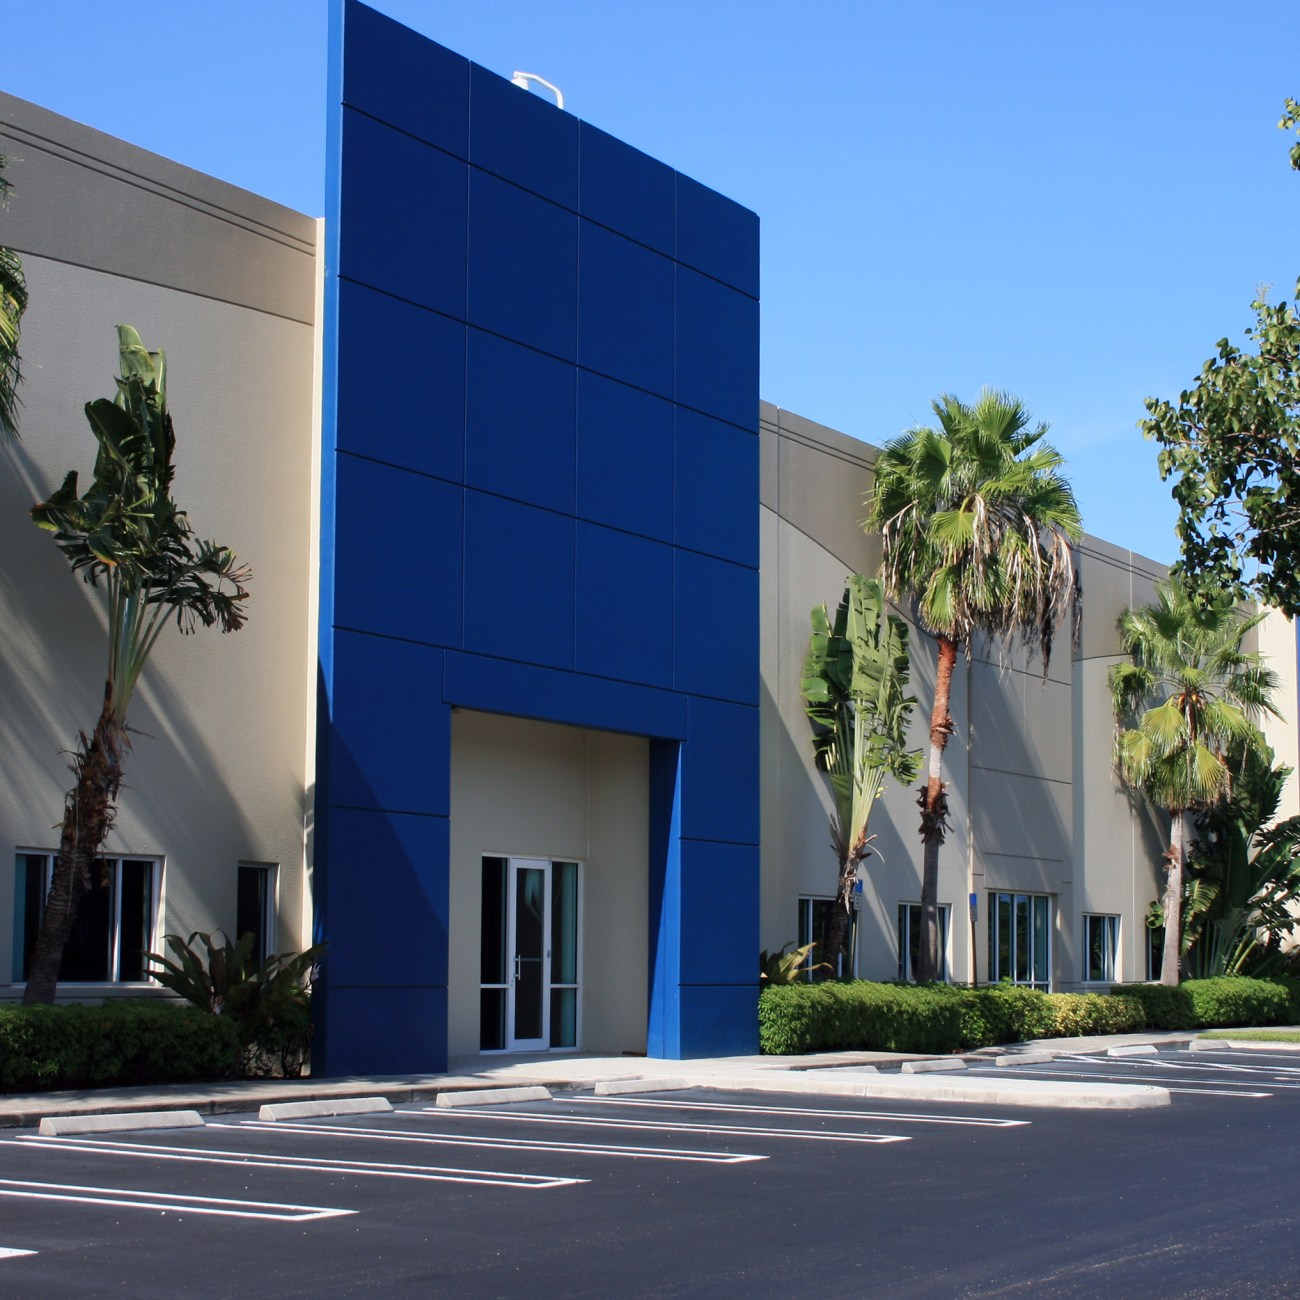 Cushman & Wakefield Brings Boynton Commerce Center to Full Occupancy